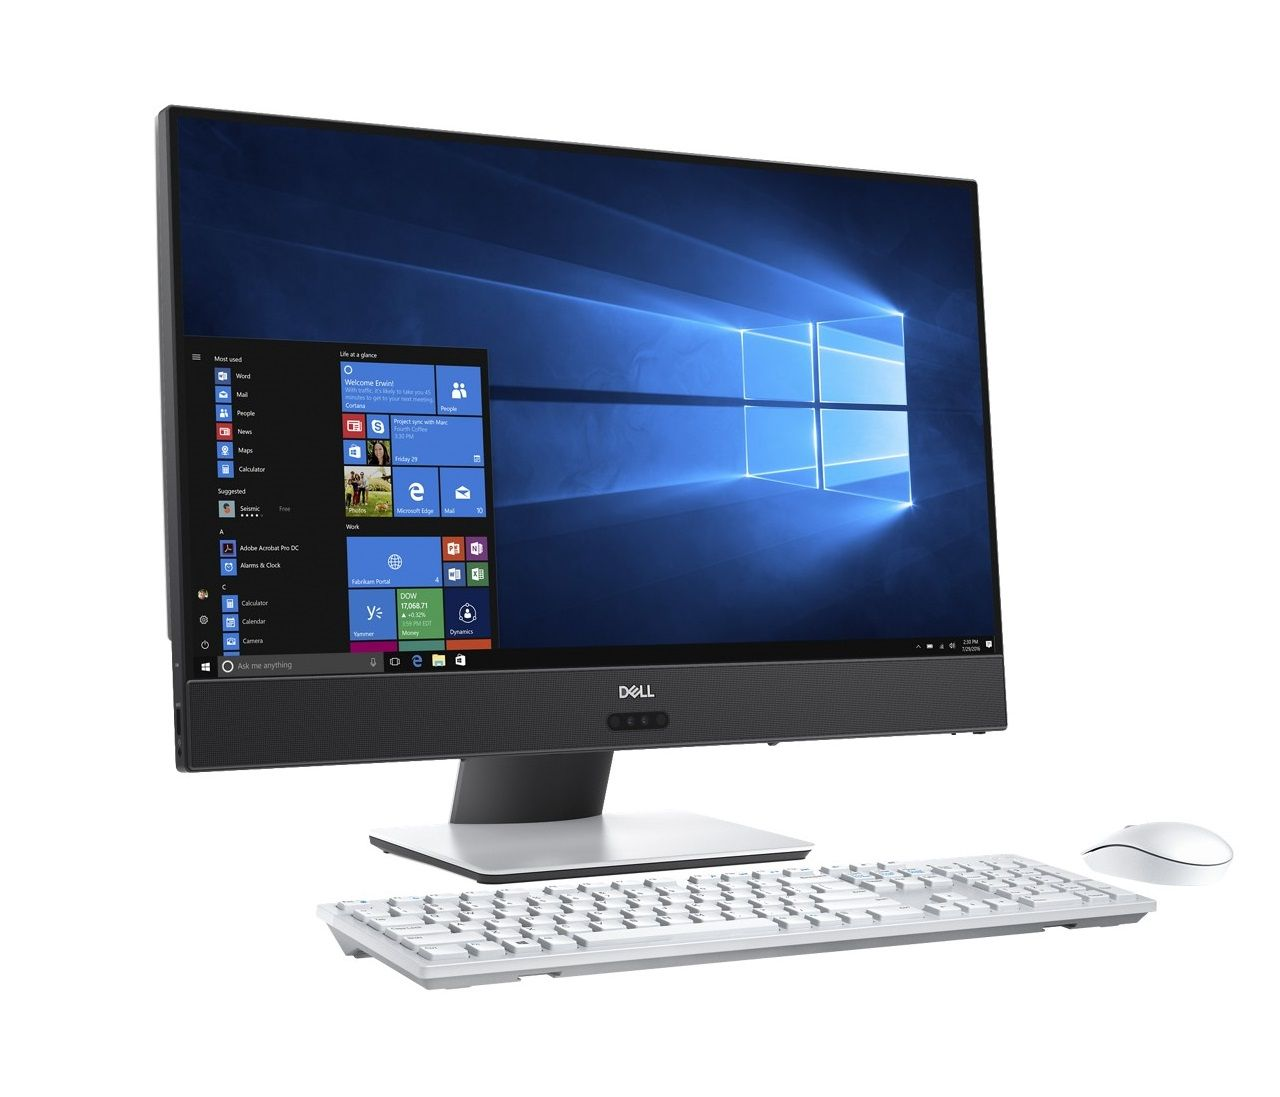 Dell Inspiron 5475 AIO/A10-9700E(quad core)/8GB/128GB SSD+1TB/ATI RX560 4GB/FHD Touch/Win Home